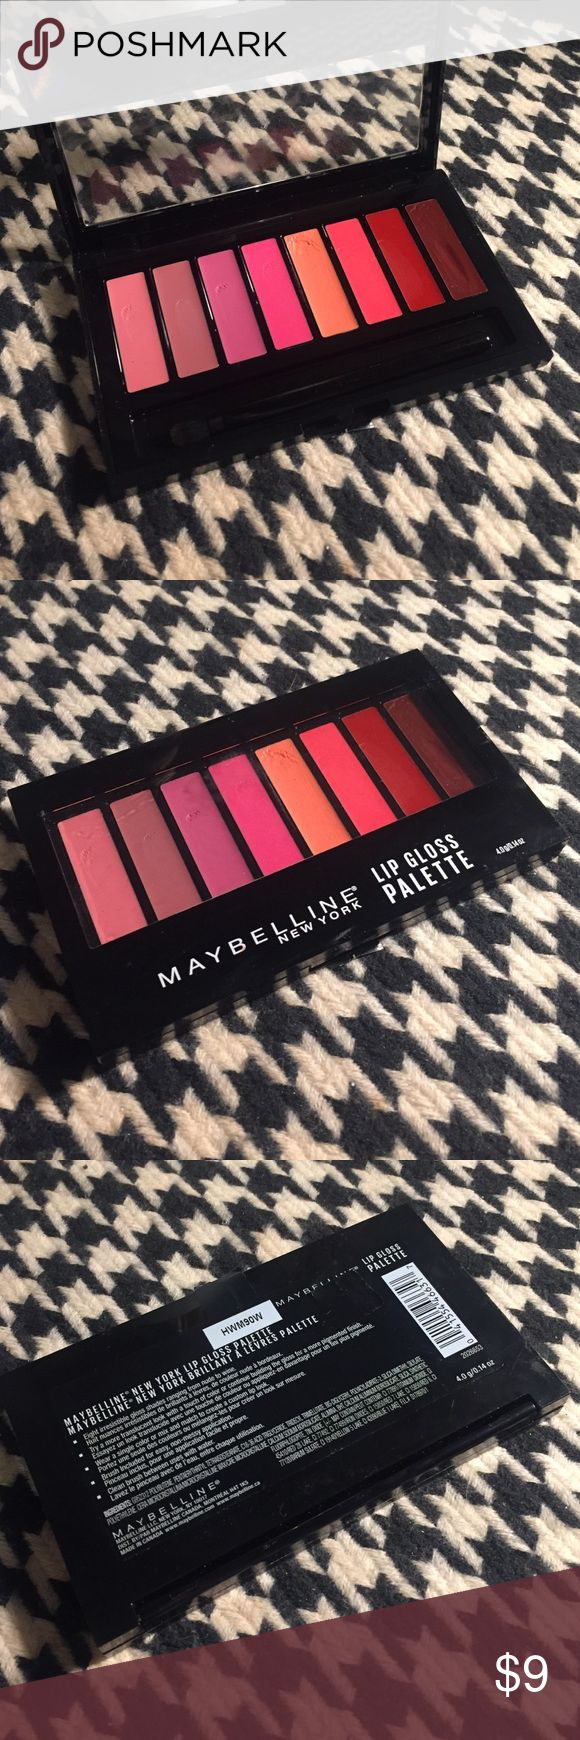 Maybelline Lip Gloss Palette Maybelline lip gloss palette. All colors have been swatched, none actually used. Maybelline Makeup Lip Balm & Gloss